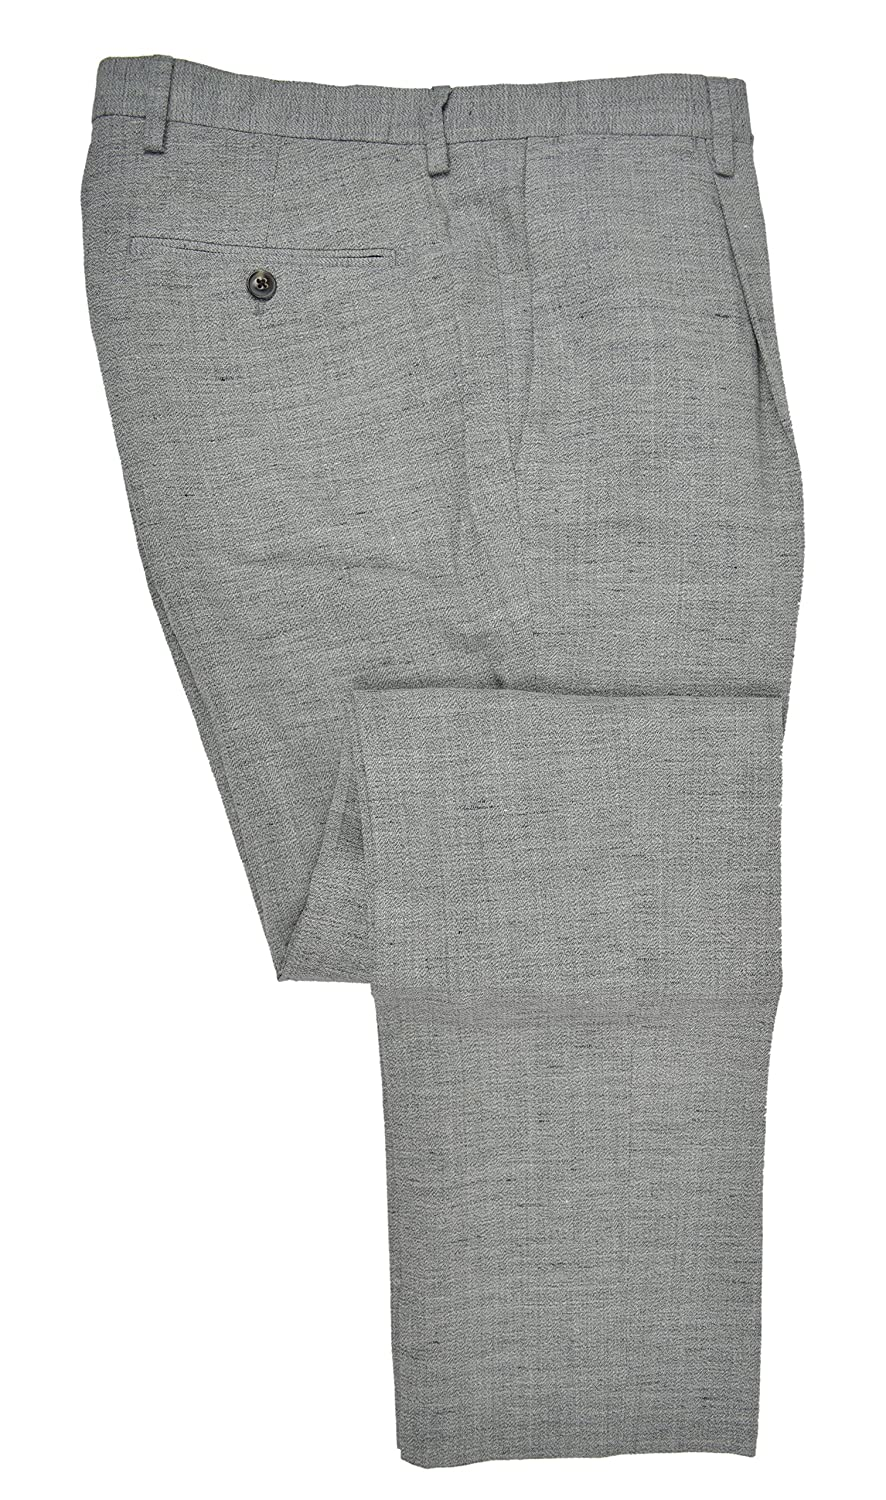 190f22c359 Top 10 wholesale Italian Linen Clothing - Chinabrands.com